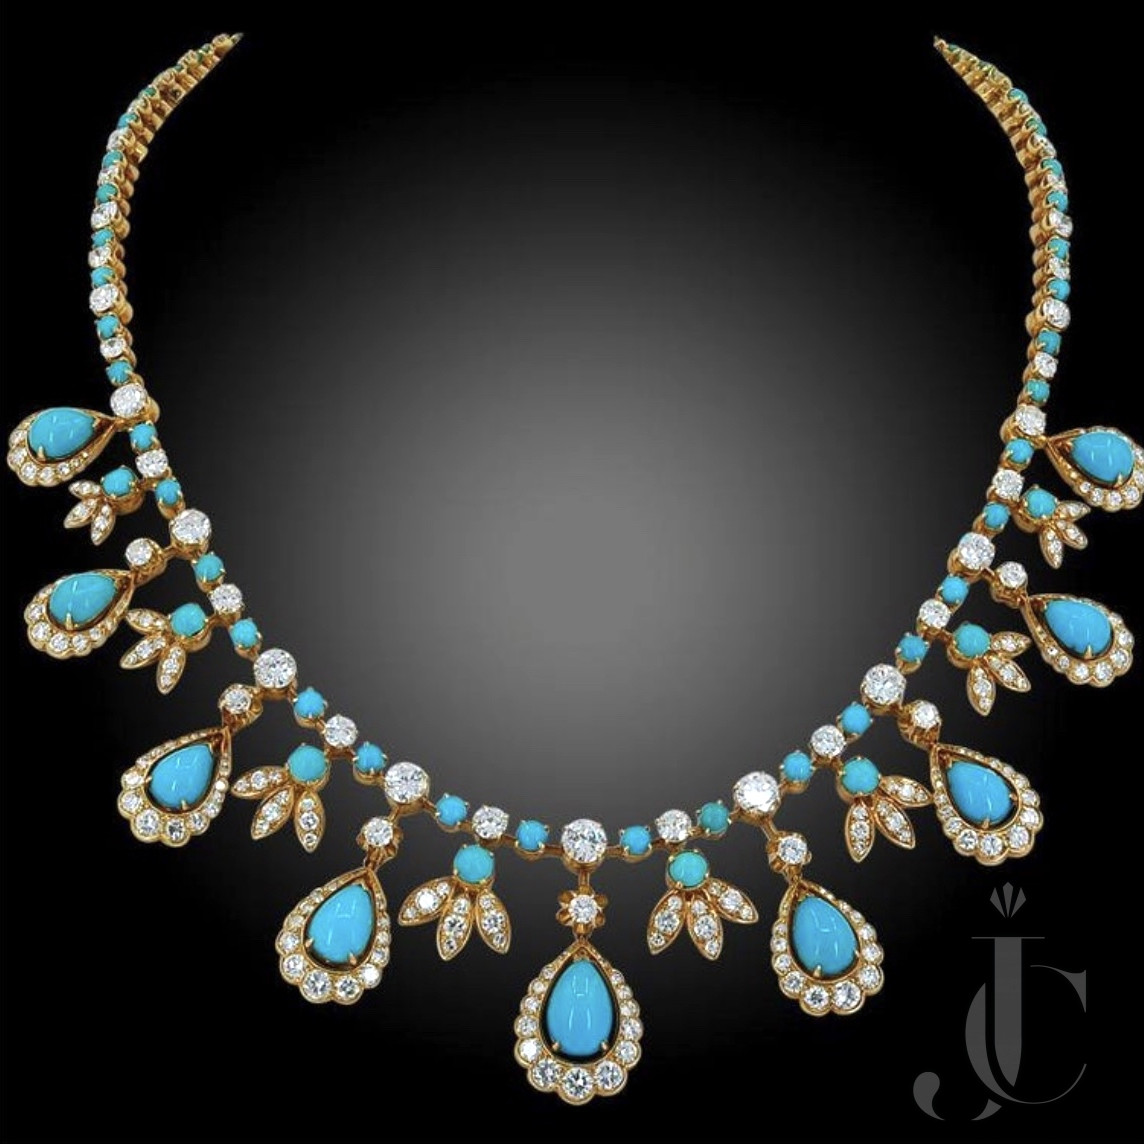 Van Cleef& Arpels Vintage French 1950's Turqoise, Diamond Necklace in 18 KT Gold